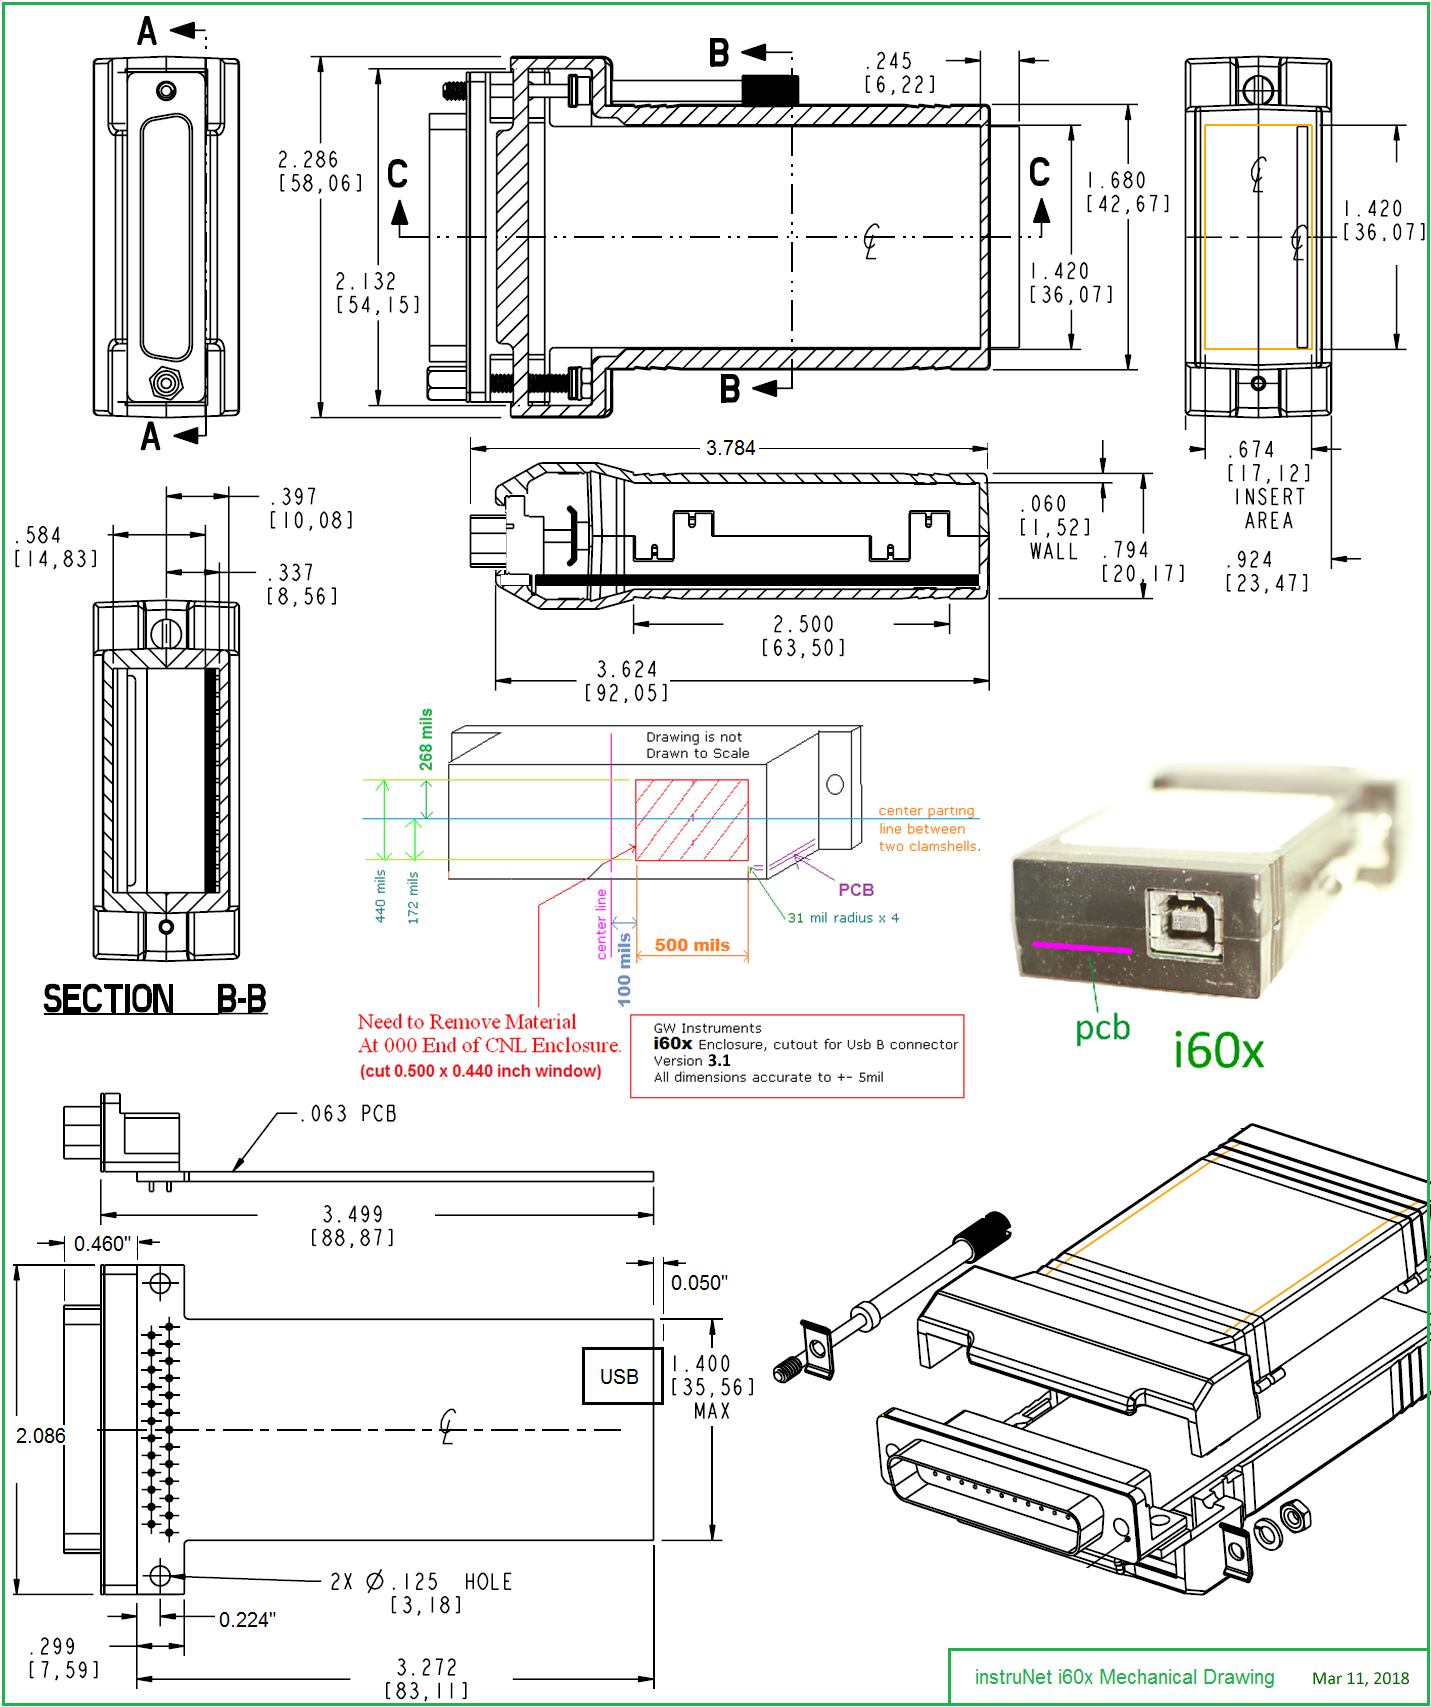 Instrunet Inet 600 601 Usb Data Acquisition Direct To Thermocouple Wiring Schematic See I60x Mechanical Drawing